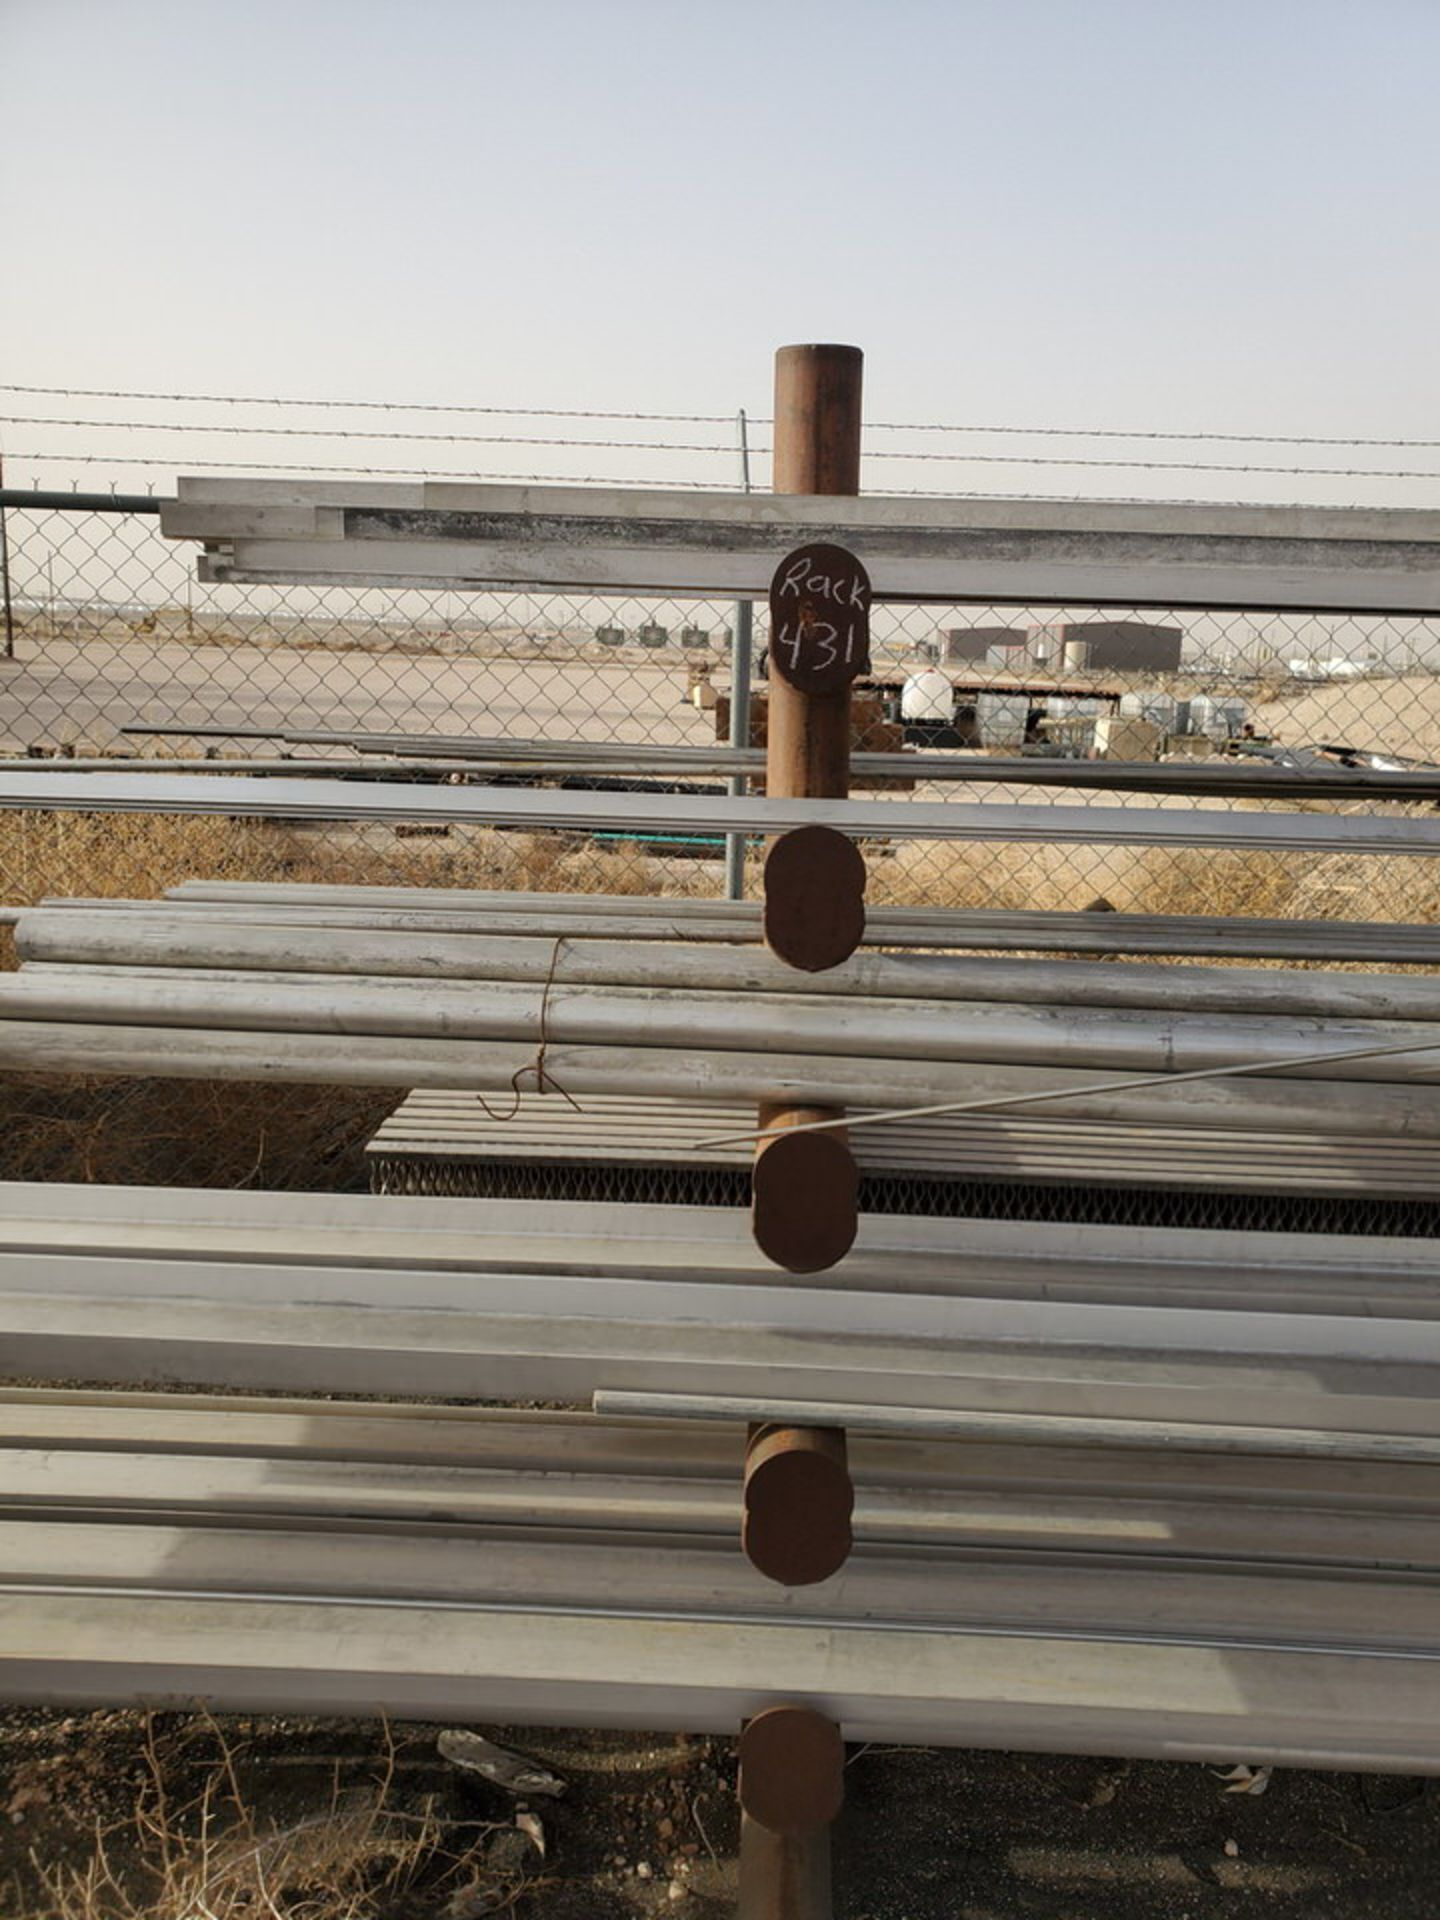 """Doublesided Cantilever Rack 15' x 6' x 6'4""""H - Image 4 of 8"""